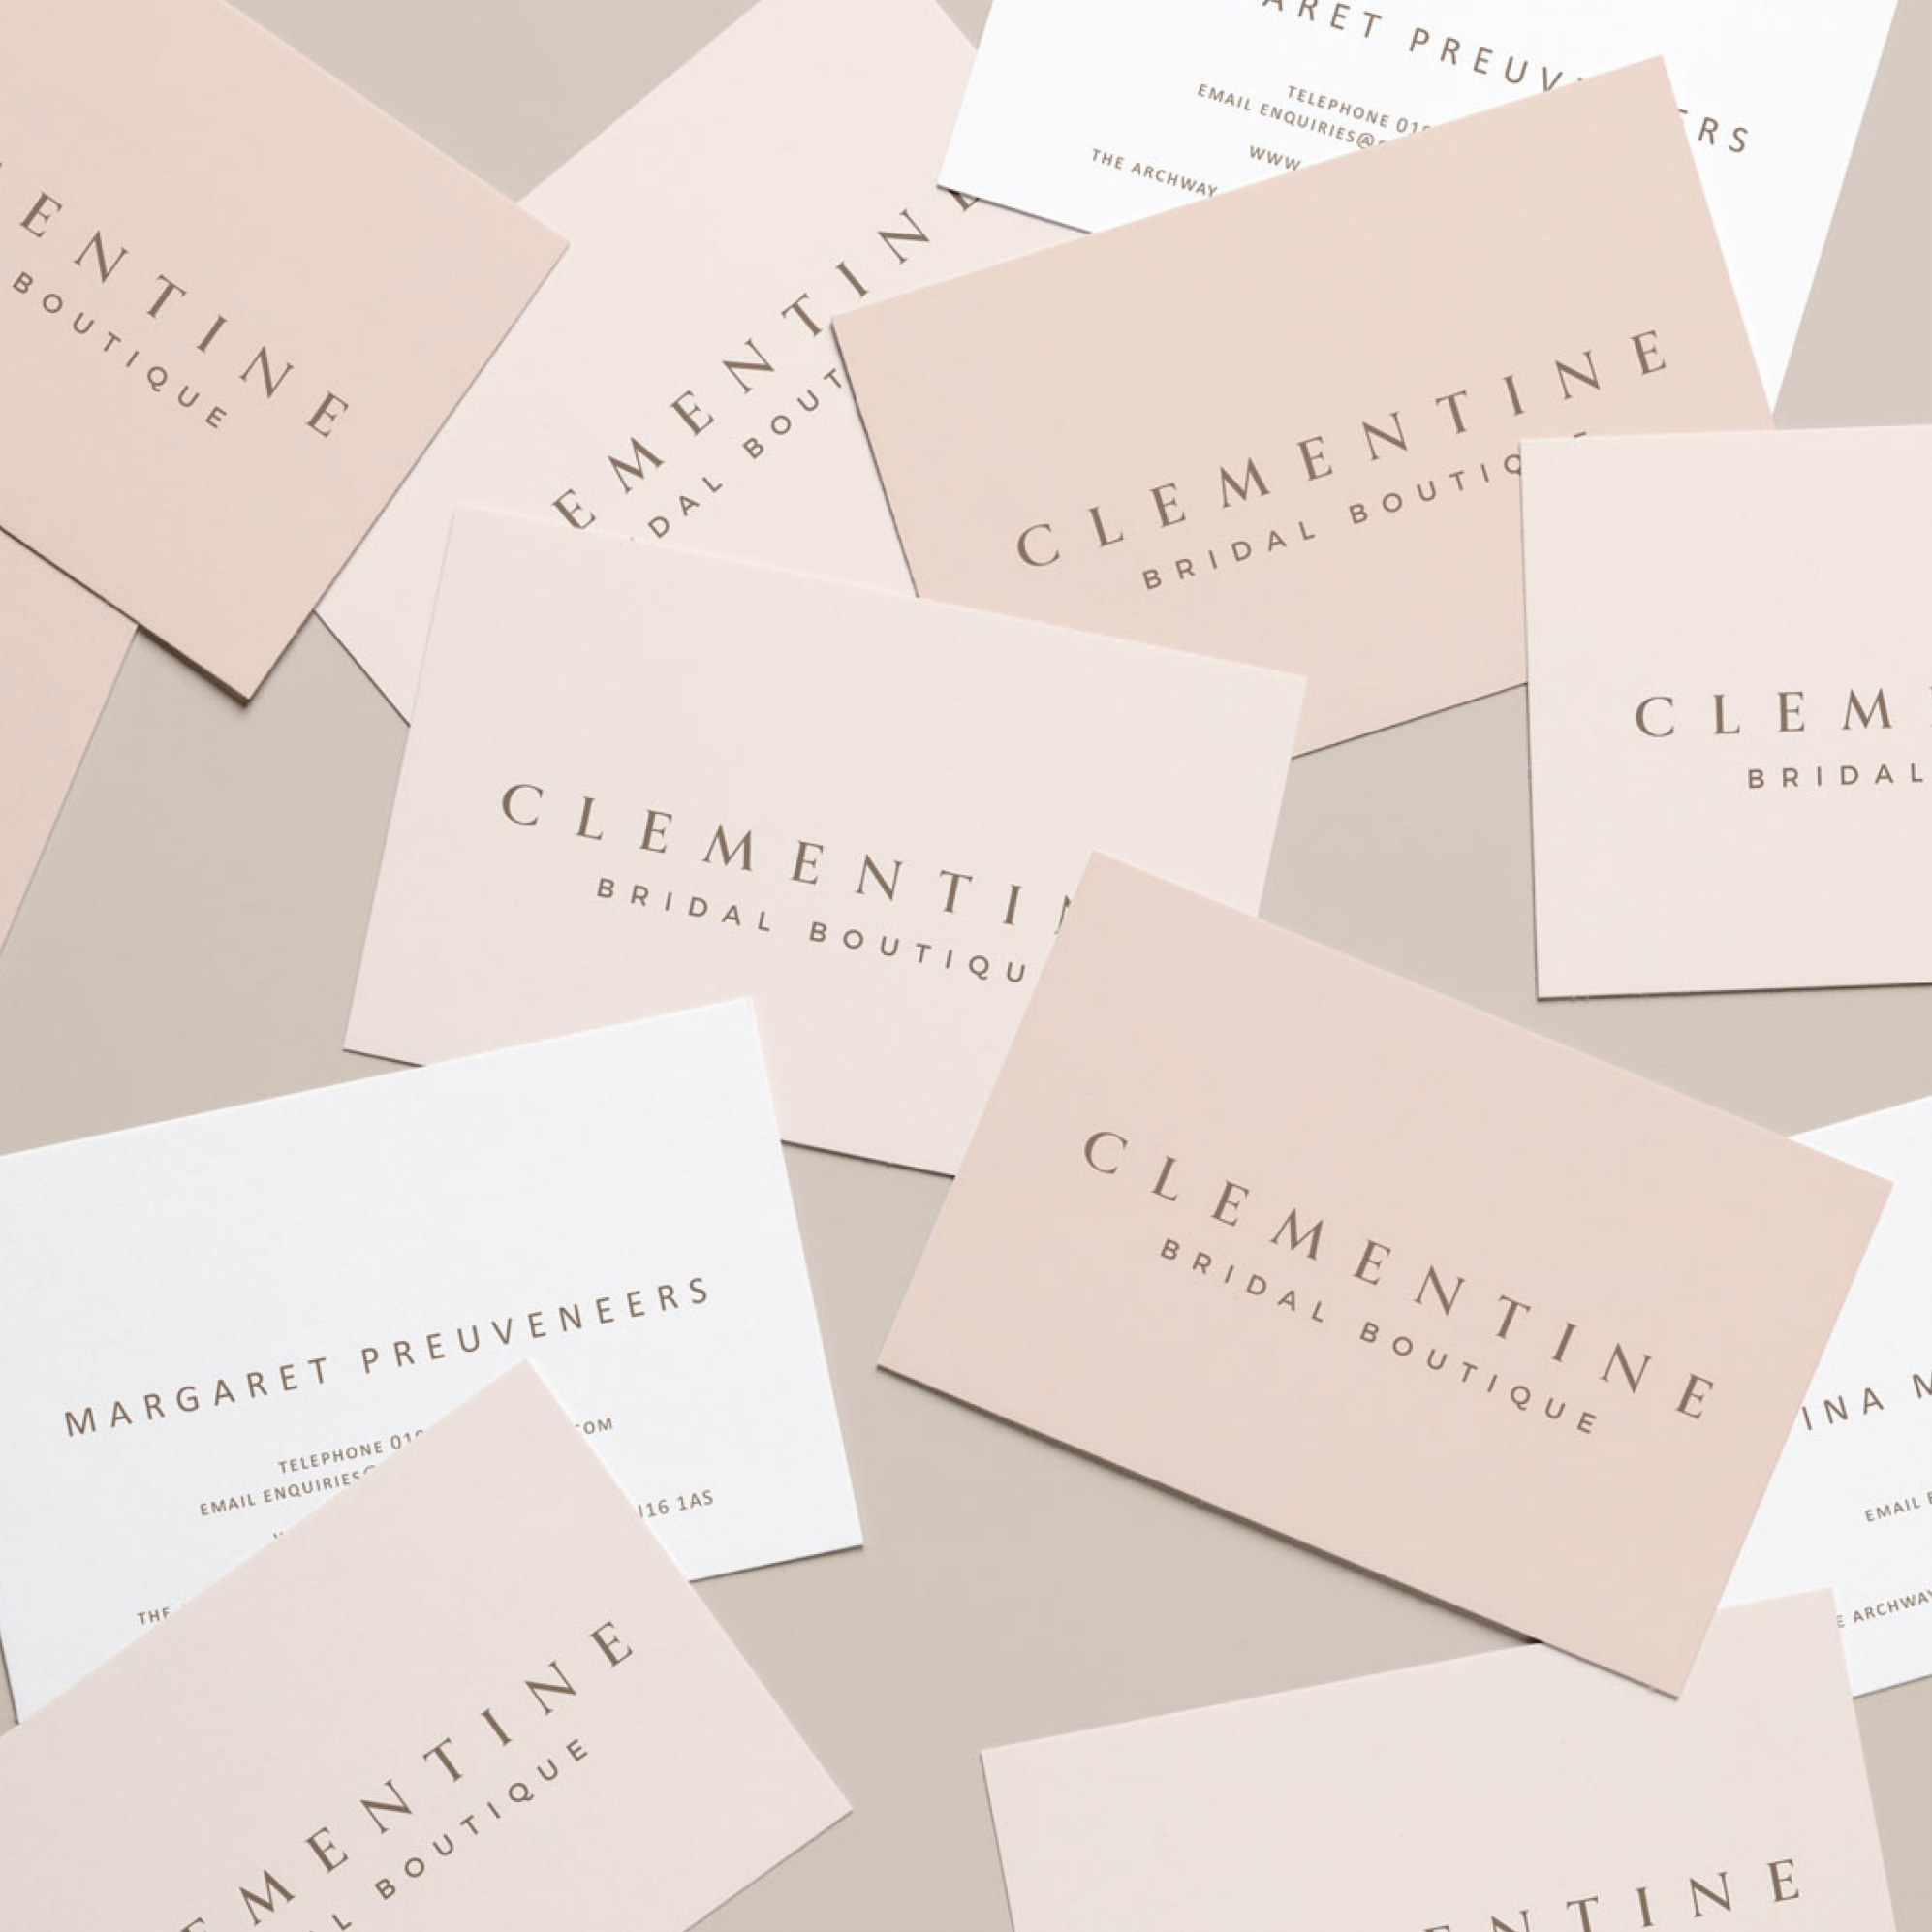 Branding - Our branding is complete and we are delighted with the final look! Designed by Gemma at www.bobblegraphics.co.ukWe love its clean lines and delicate detail. The shop signage is on order so watch this space for a sneak preview….